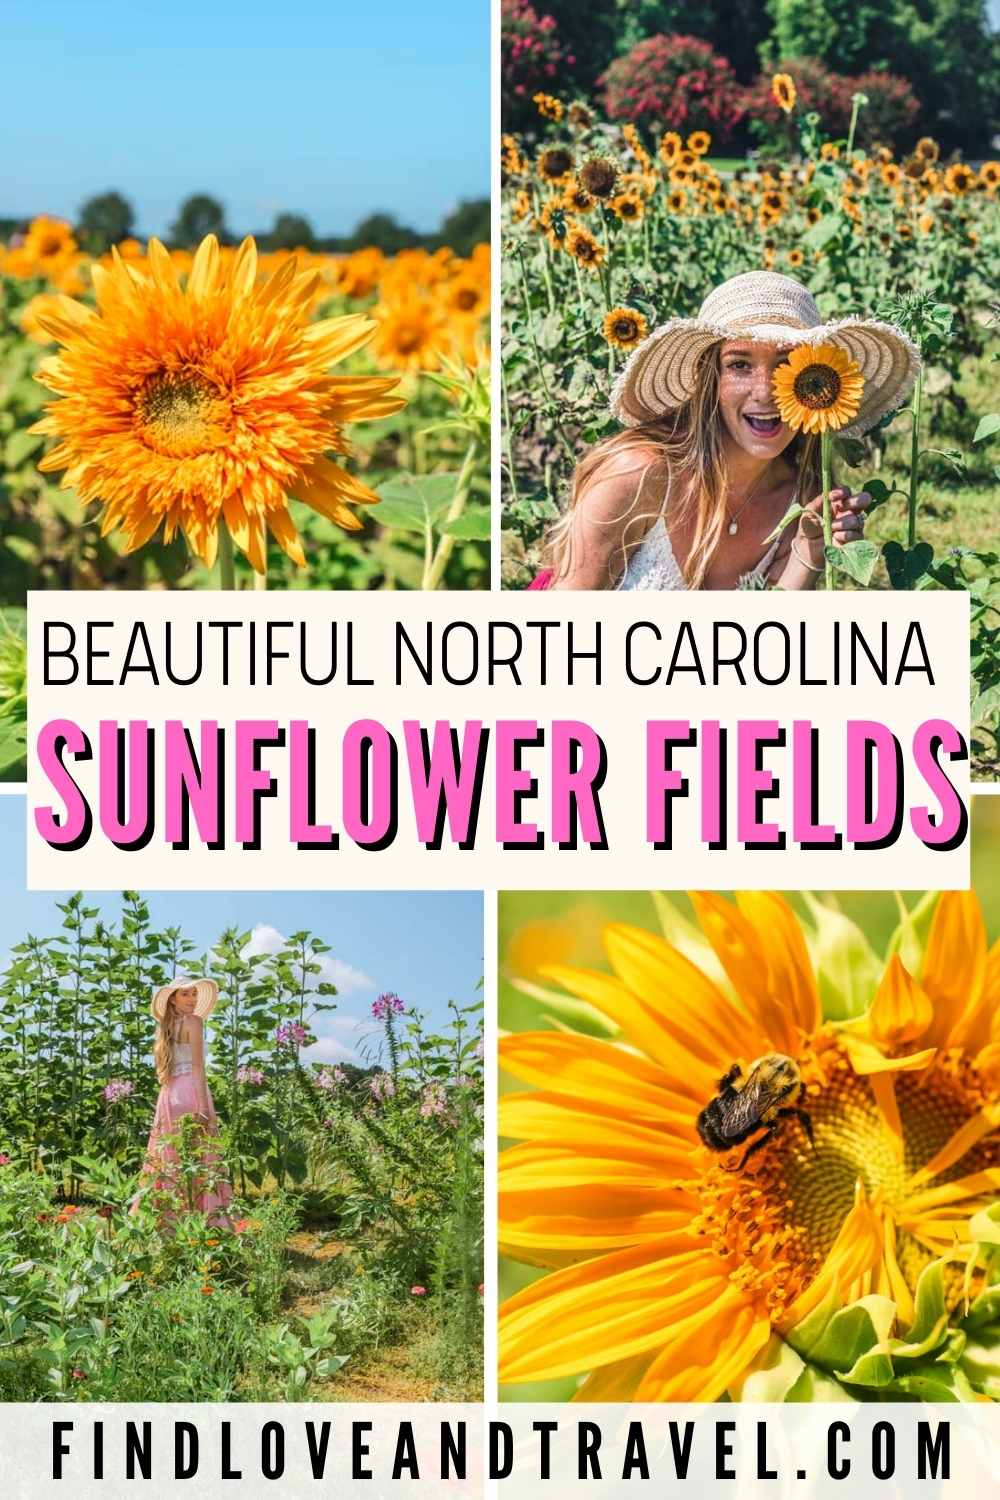 Sunflower Fields in NC you need to visit!